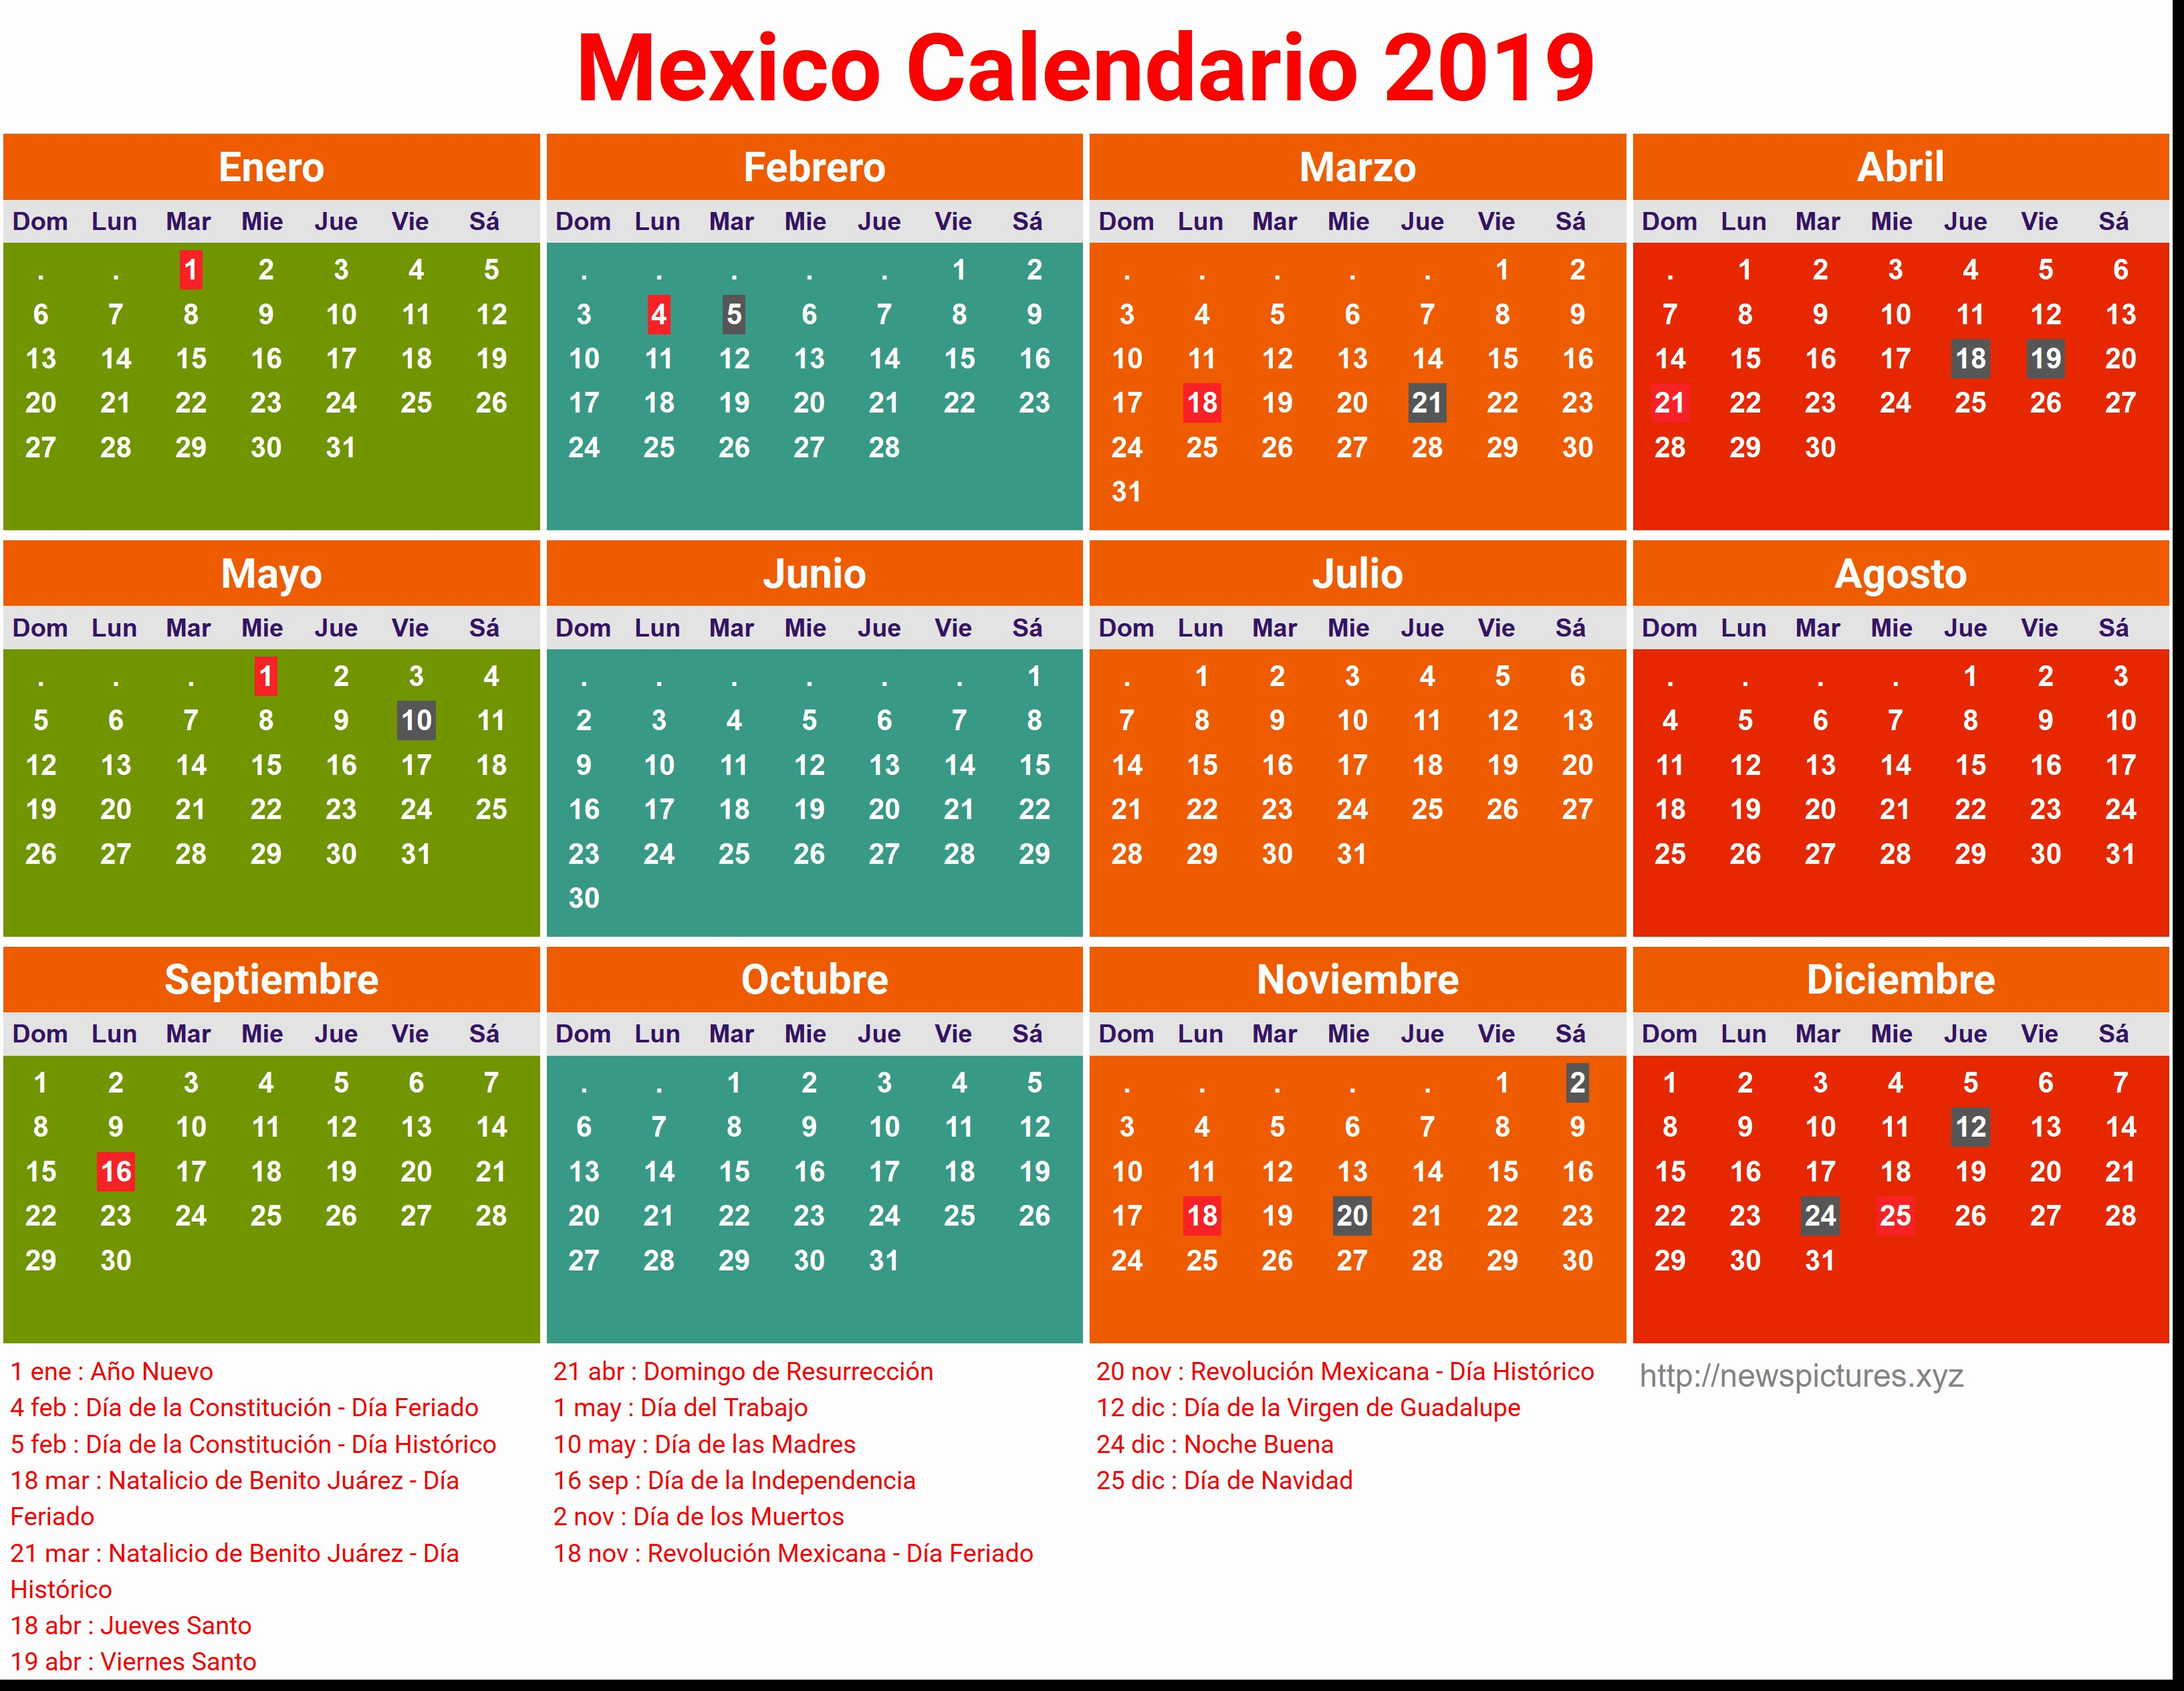 Calendario Michel Zbinden Abril 2019 Mejores Y Más Novedosos Calendario 2019 Argentina Para Imprimir Calendar Amatcard Of Calendario Michel Zbinden Abril 2019 Recientes June Holiday 2018 south Africa Bestholidaydeals Co